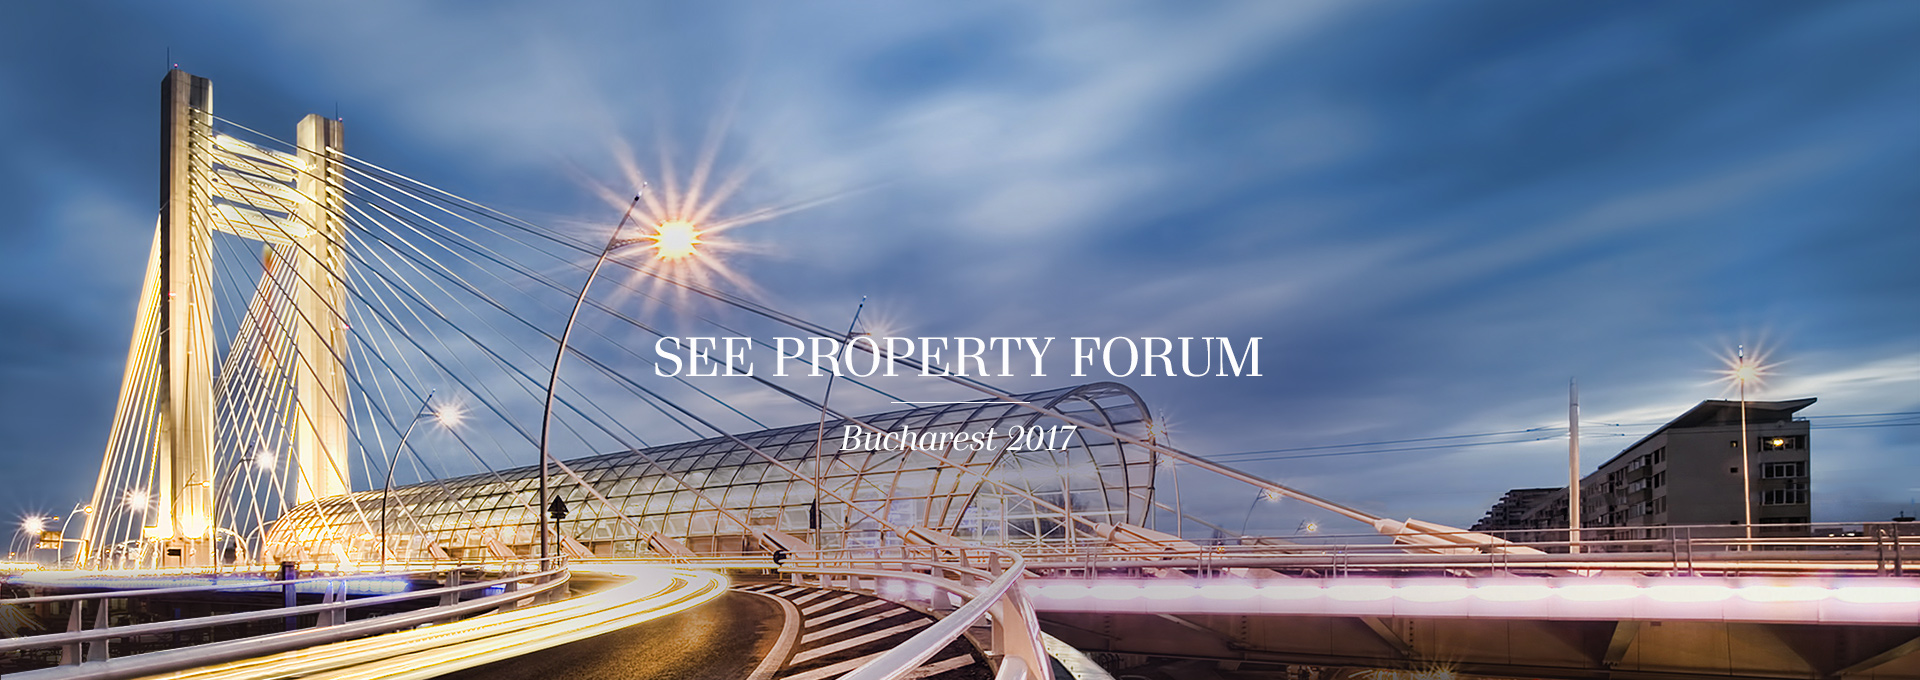 See Property Forum 2017 Bucharest Romania Property Forum